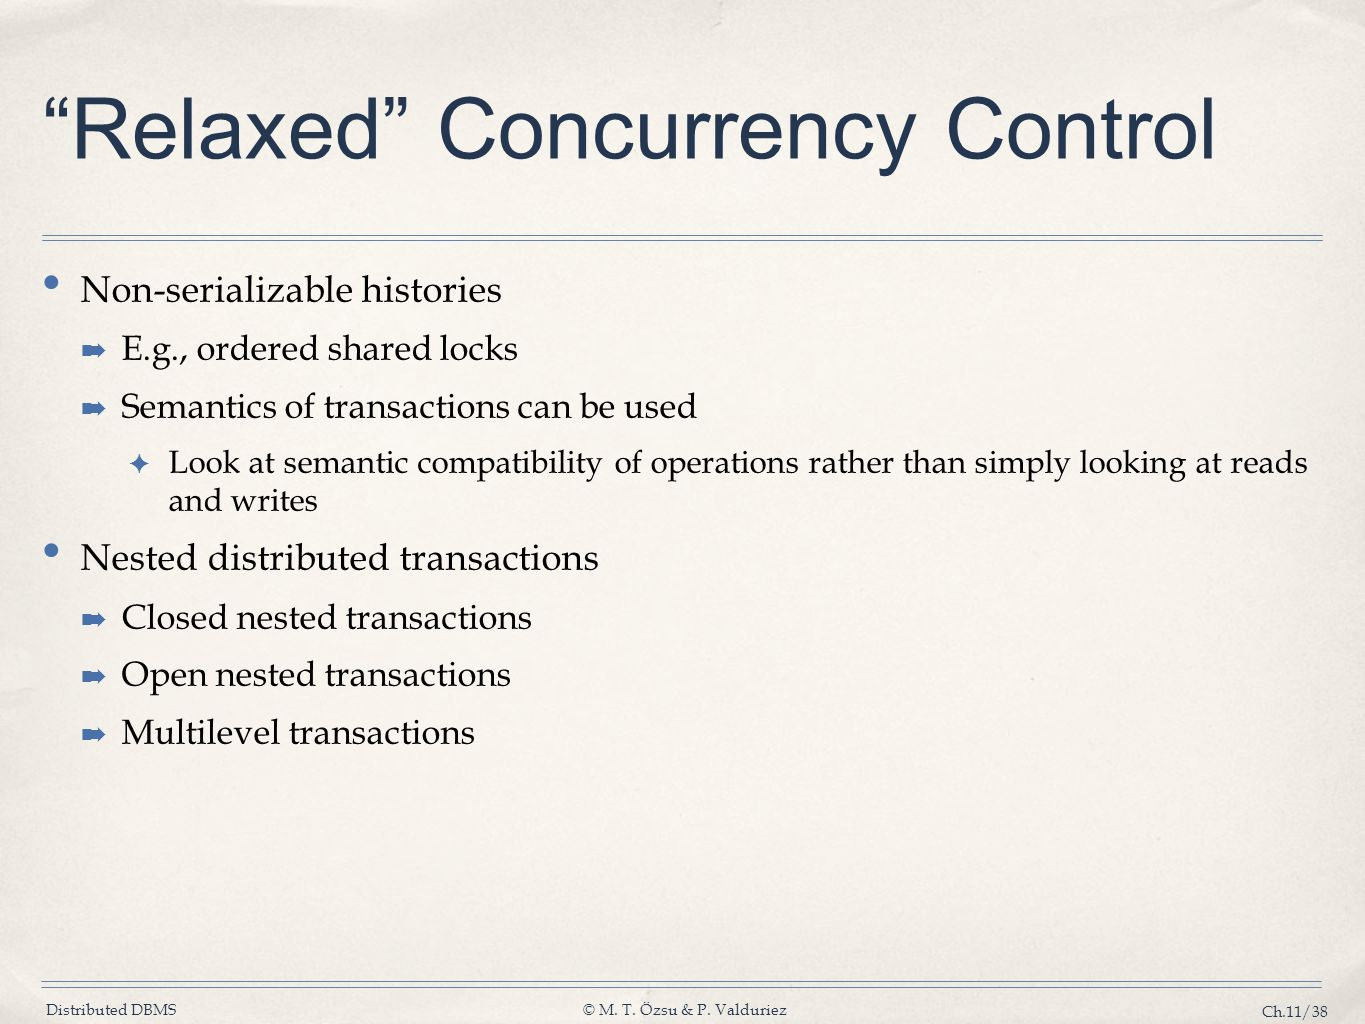 Relaxed Concurrency Control